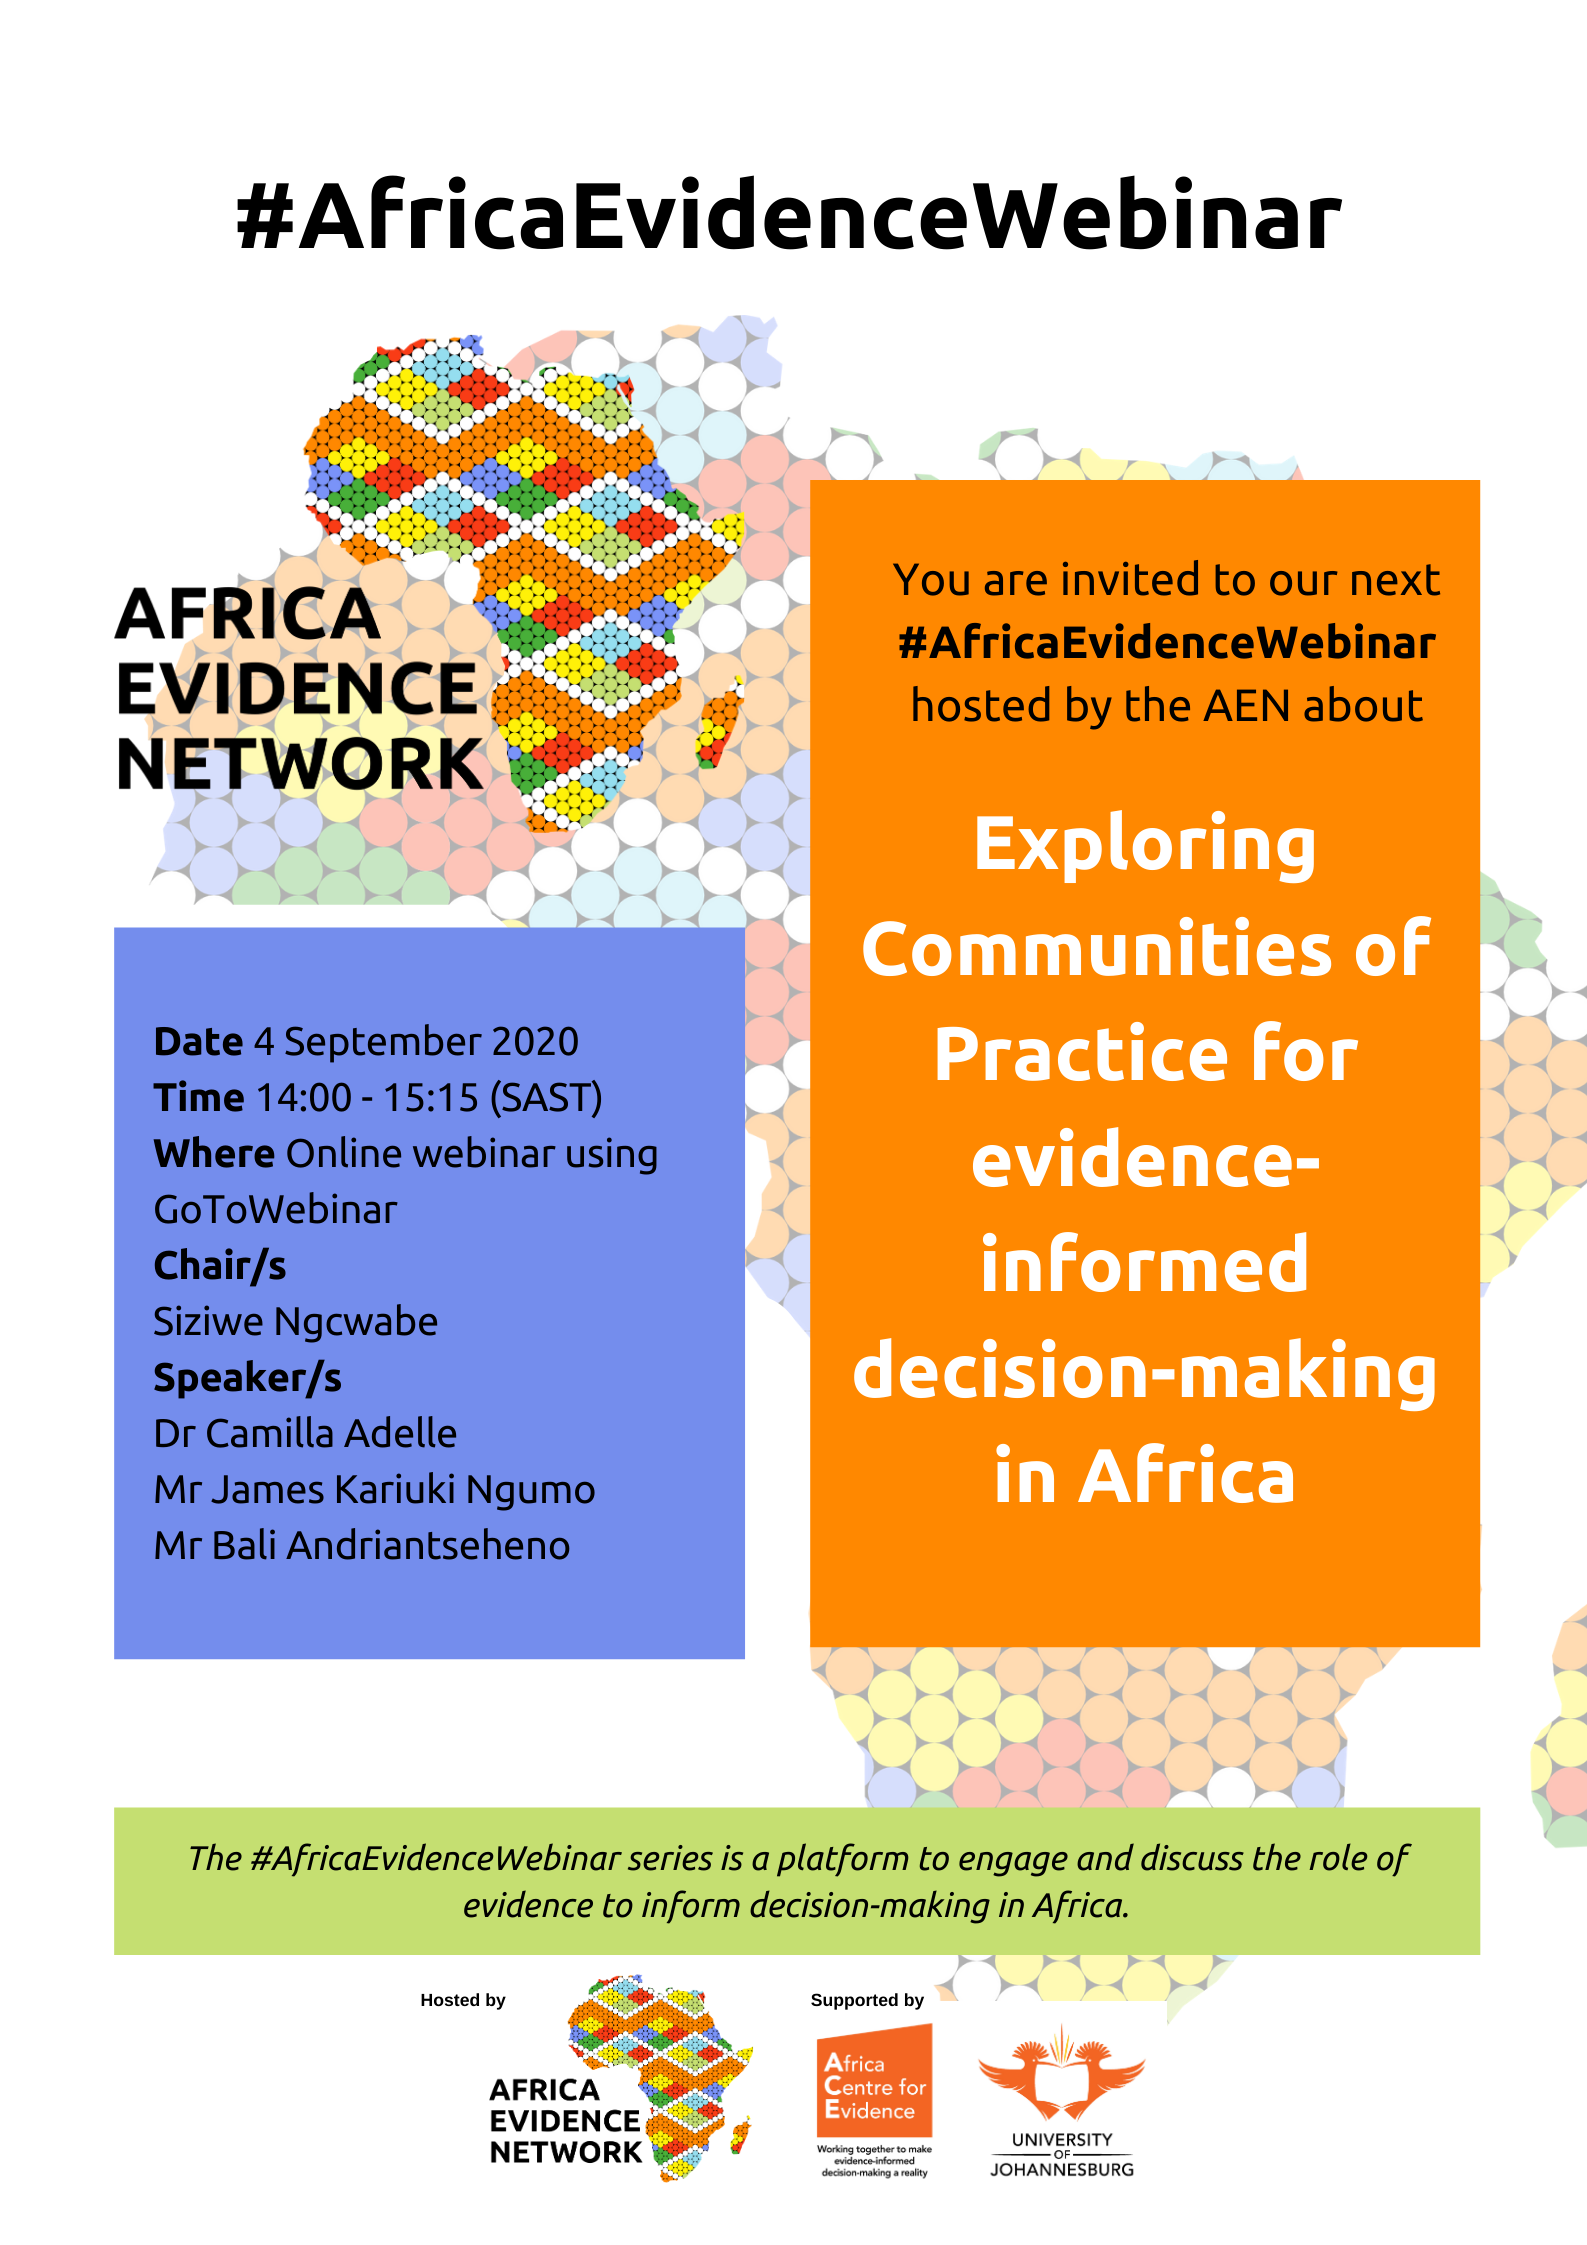 #AfricaEvidenceWebinar | Exploring communities of practice for evidence-informed decision-making in Africa